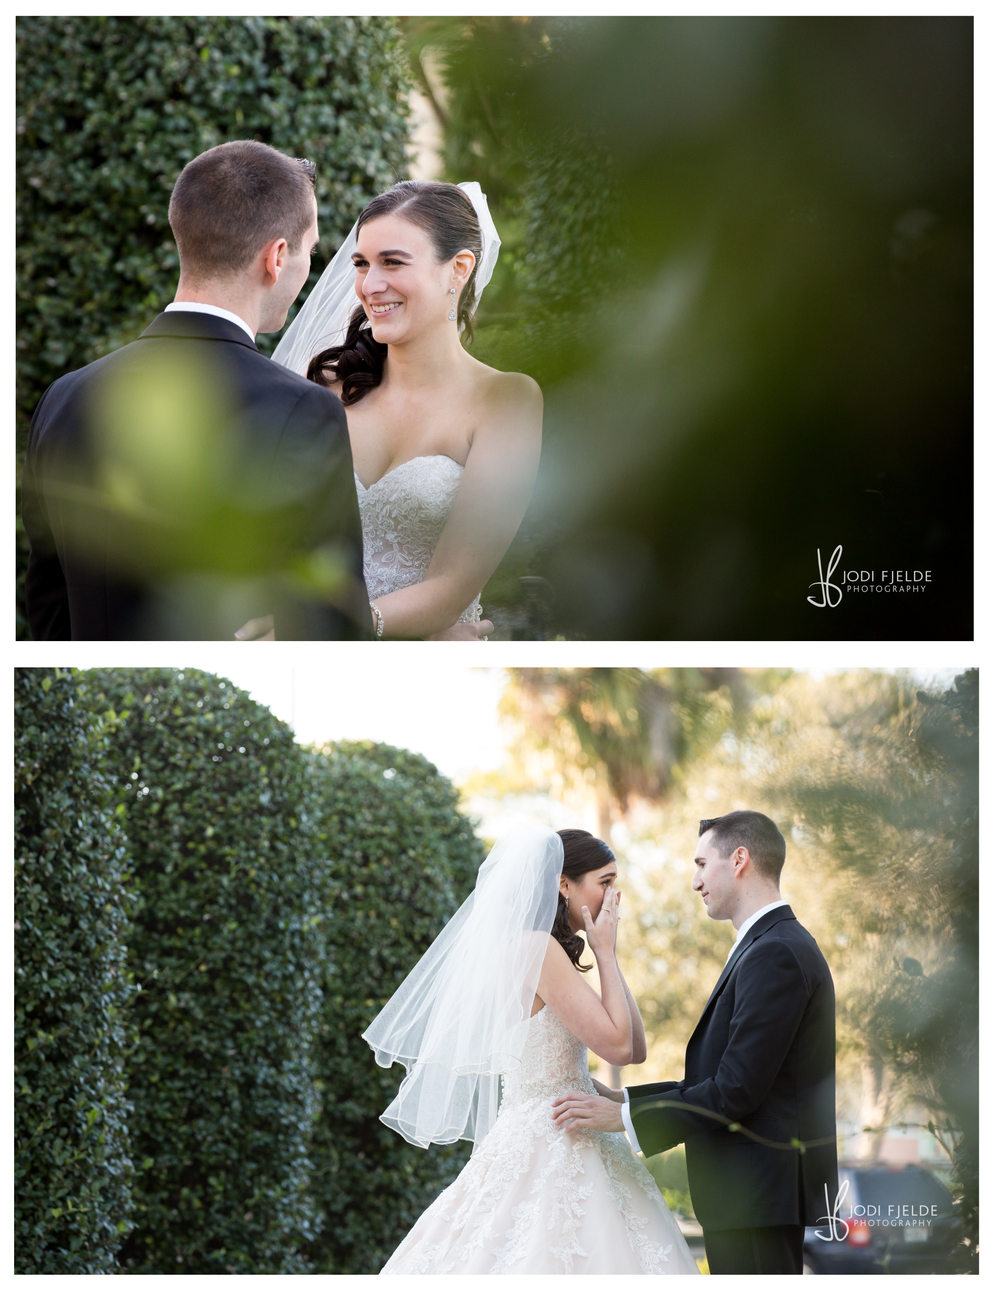 Benvenuto_Palm_Beach_Wedding_Jewish_Michelle & Jason_Jodi_Fjedle_Photography 24.jpg